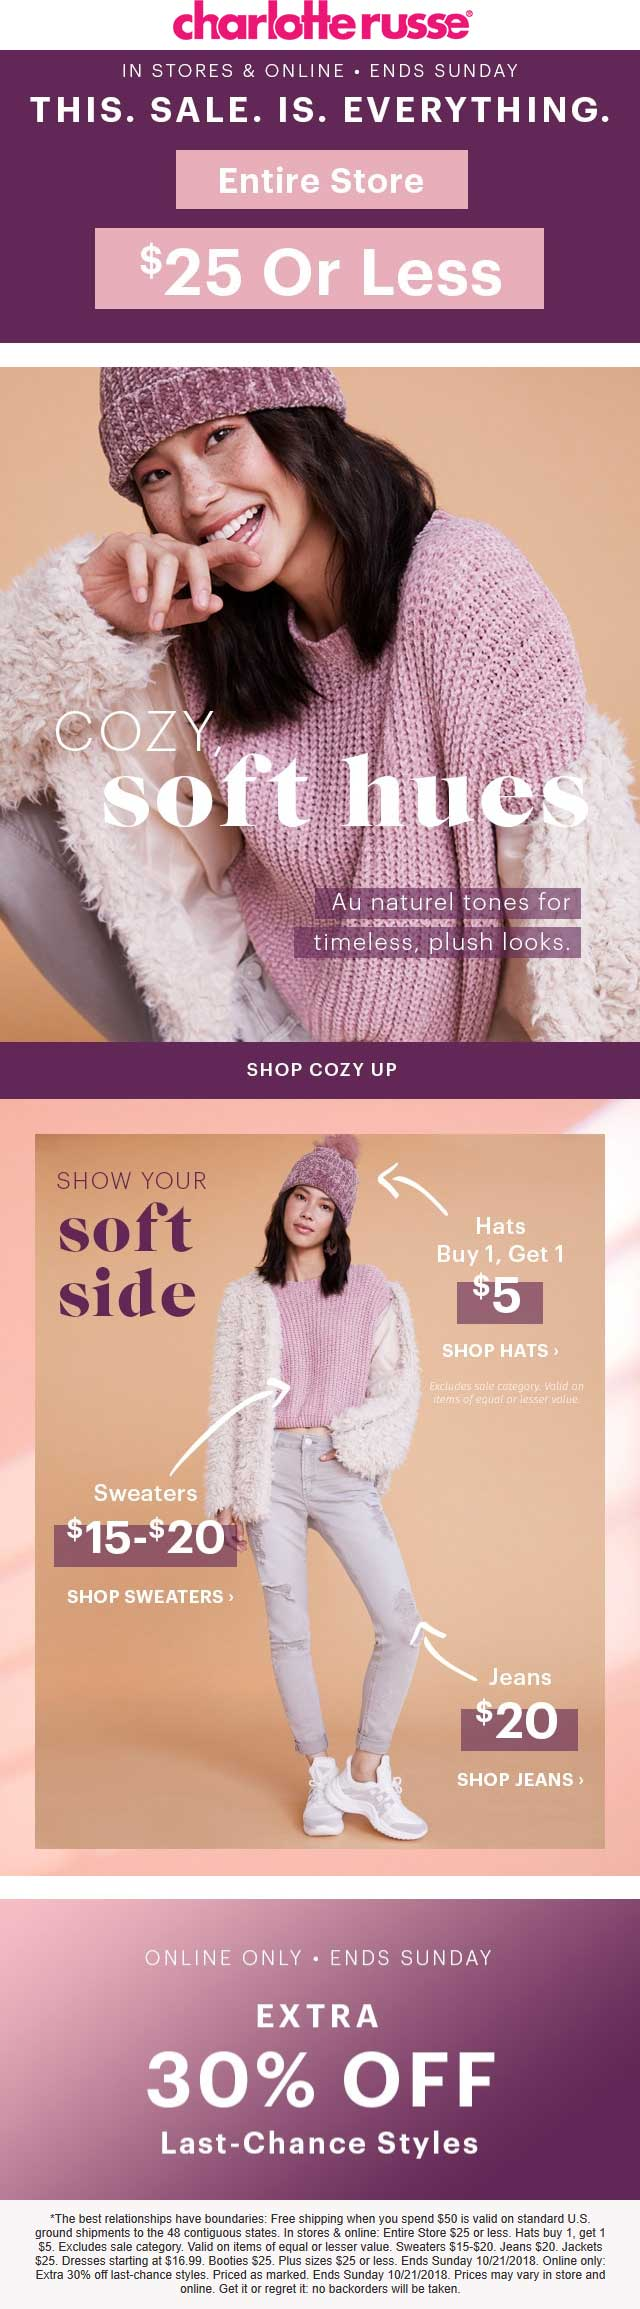 Charlotte Russe Coupon May 2019 Entire store under $26 at Charlotte Russe, ditto online